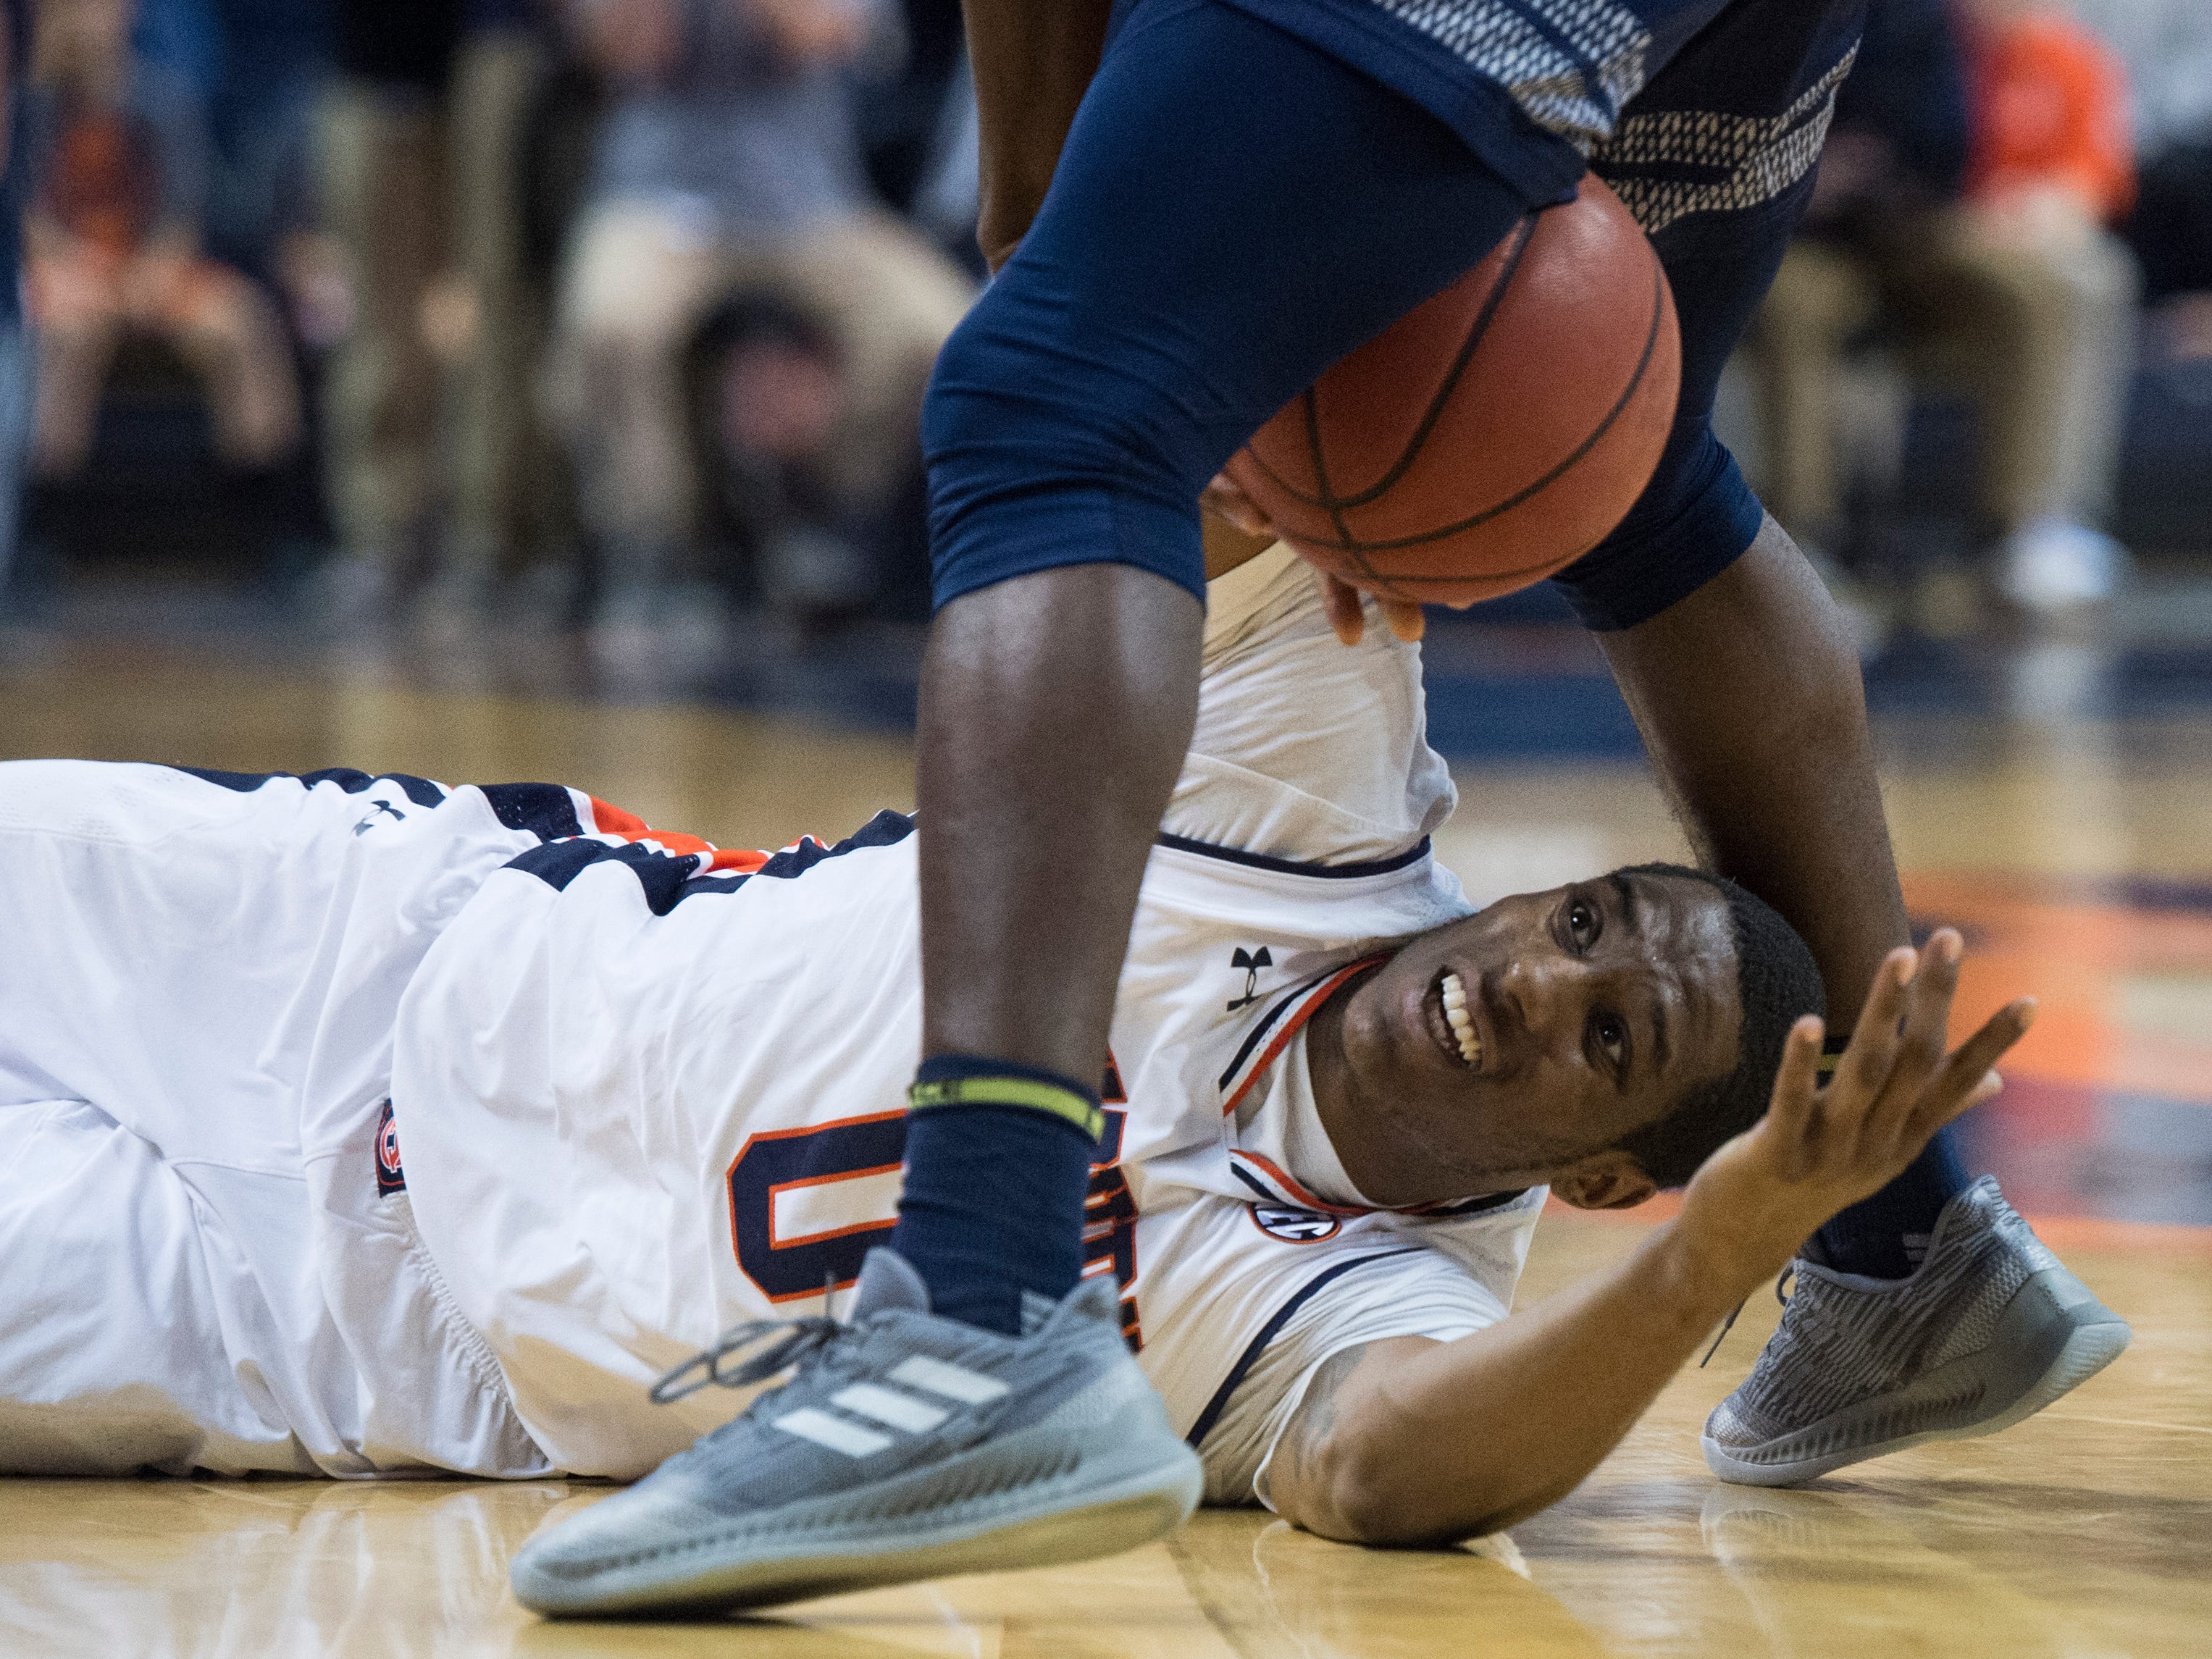 Auburn forward Horace Spencer (0) fights for a loose ball at Auburn Arena in Auburn, Ala., on Wednesday, Nov. 28, 2018. Auburn defeated Saint Peter's 99-49.